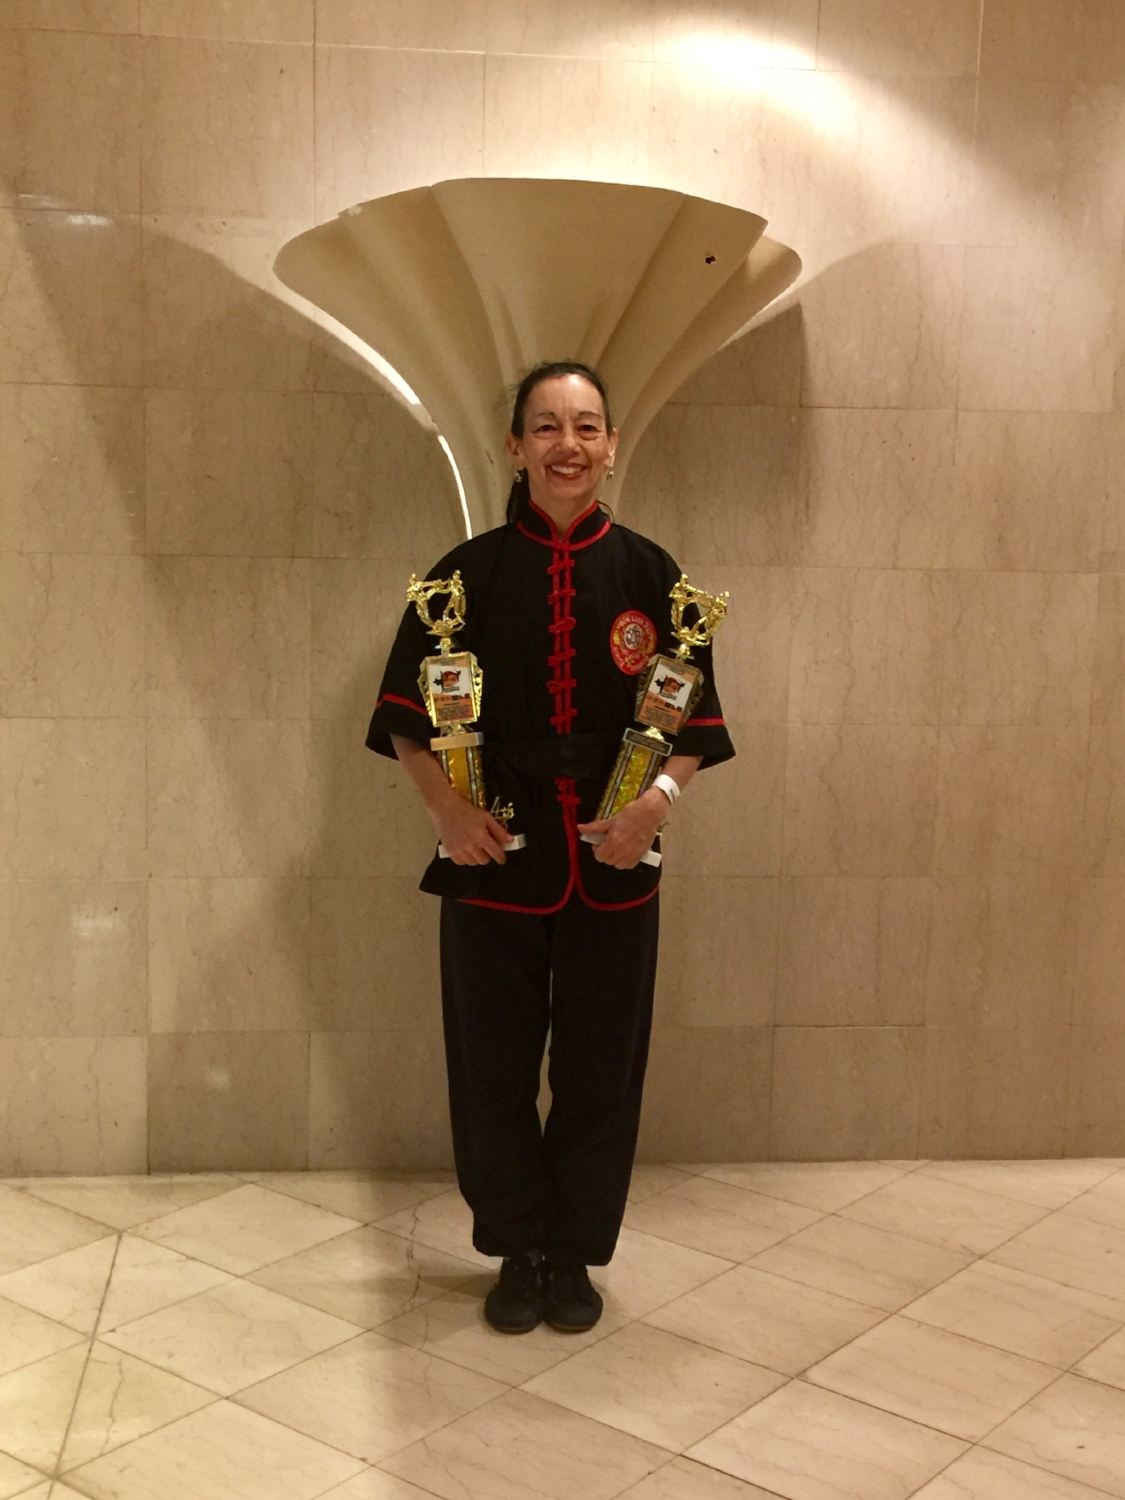 Sharon Montella 4.7.18 Ocean State Grand Nationals Krane Tournament Warwick RI 4.7.18 - Black Belt Women Trad. Weapons for Double Sword. Trad. Forms with Movements of White Swan - high resolution.jpg